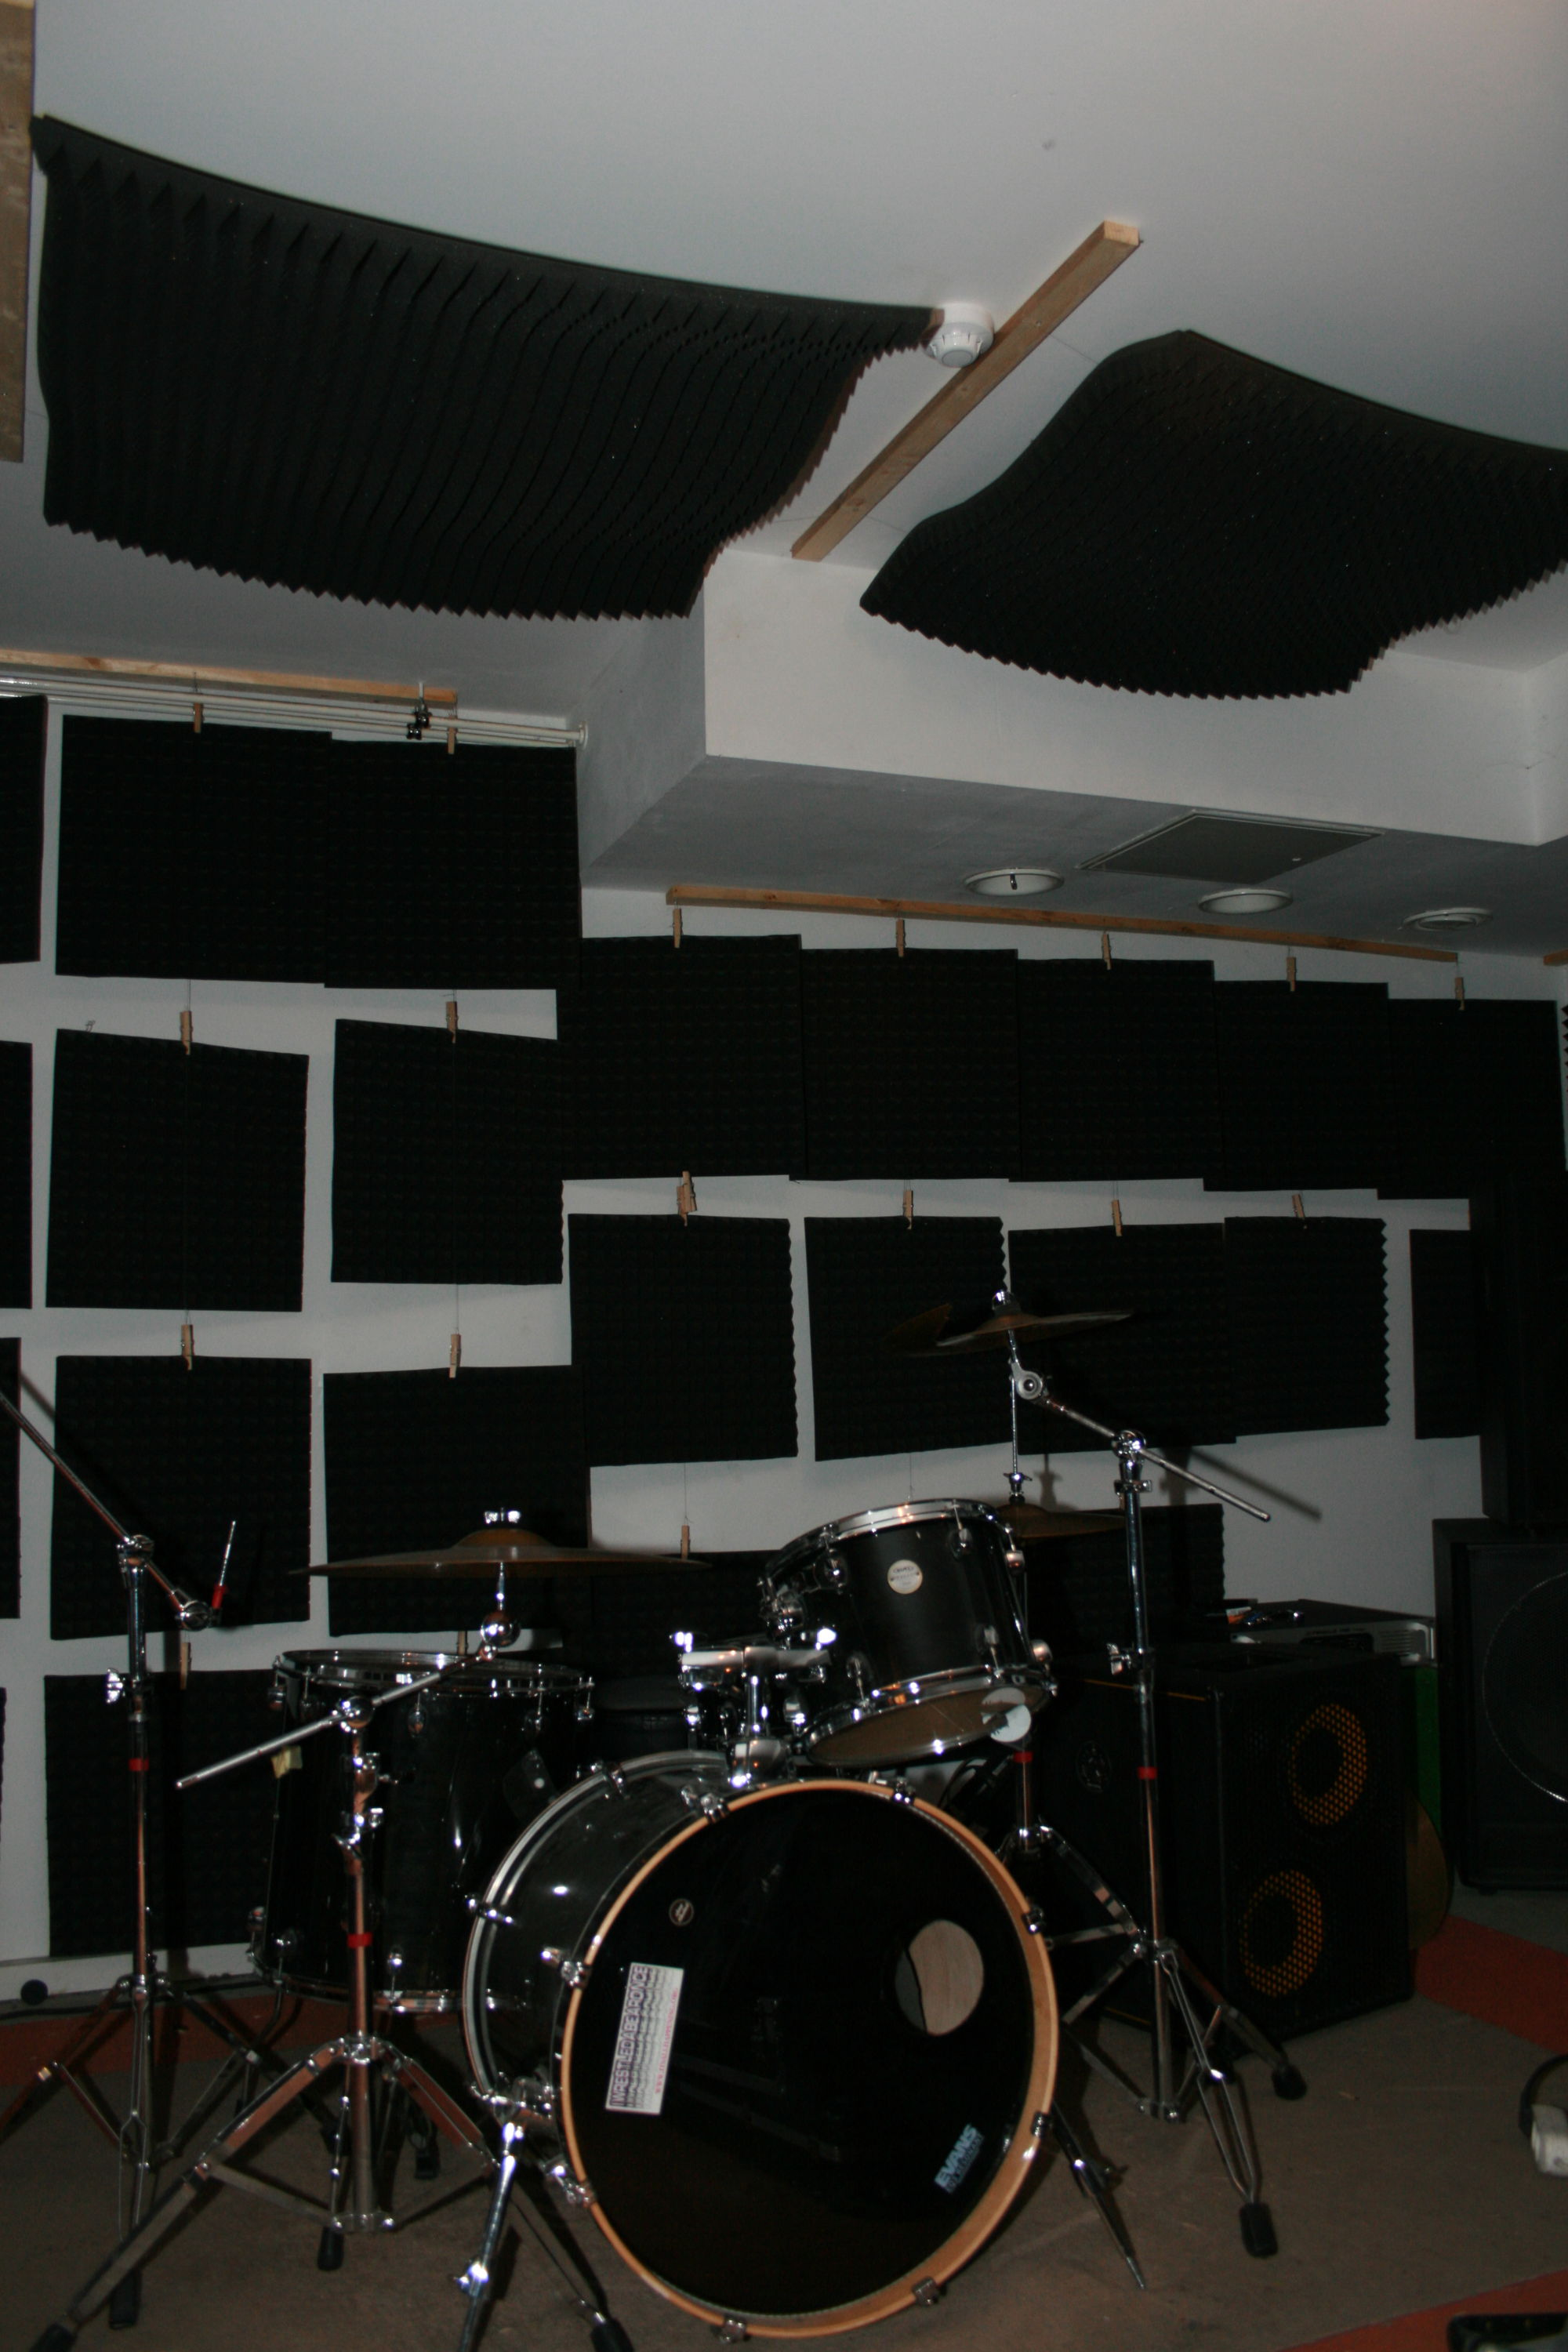 acoustic foam mats on the ceiling over a drum set